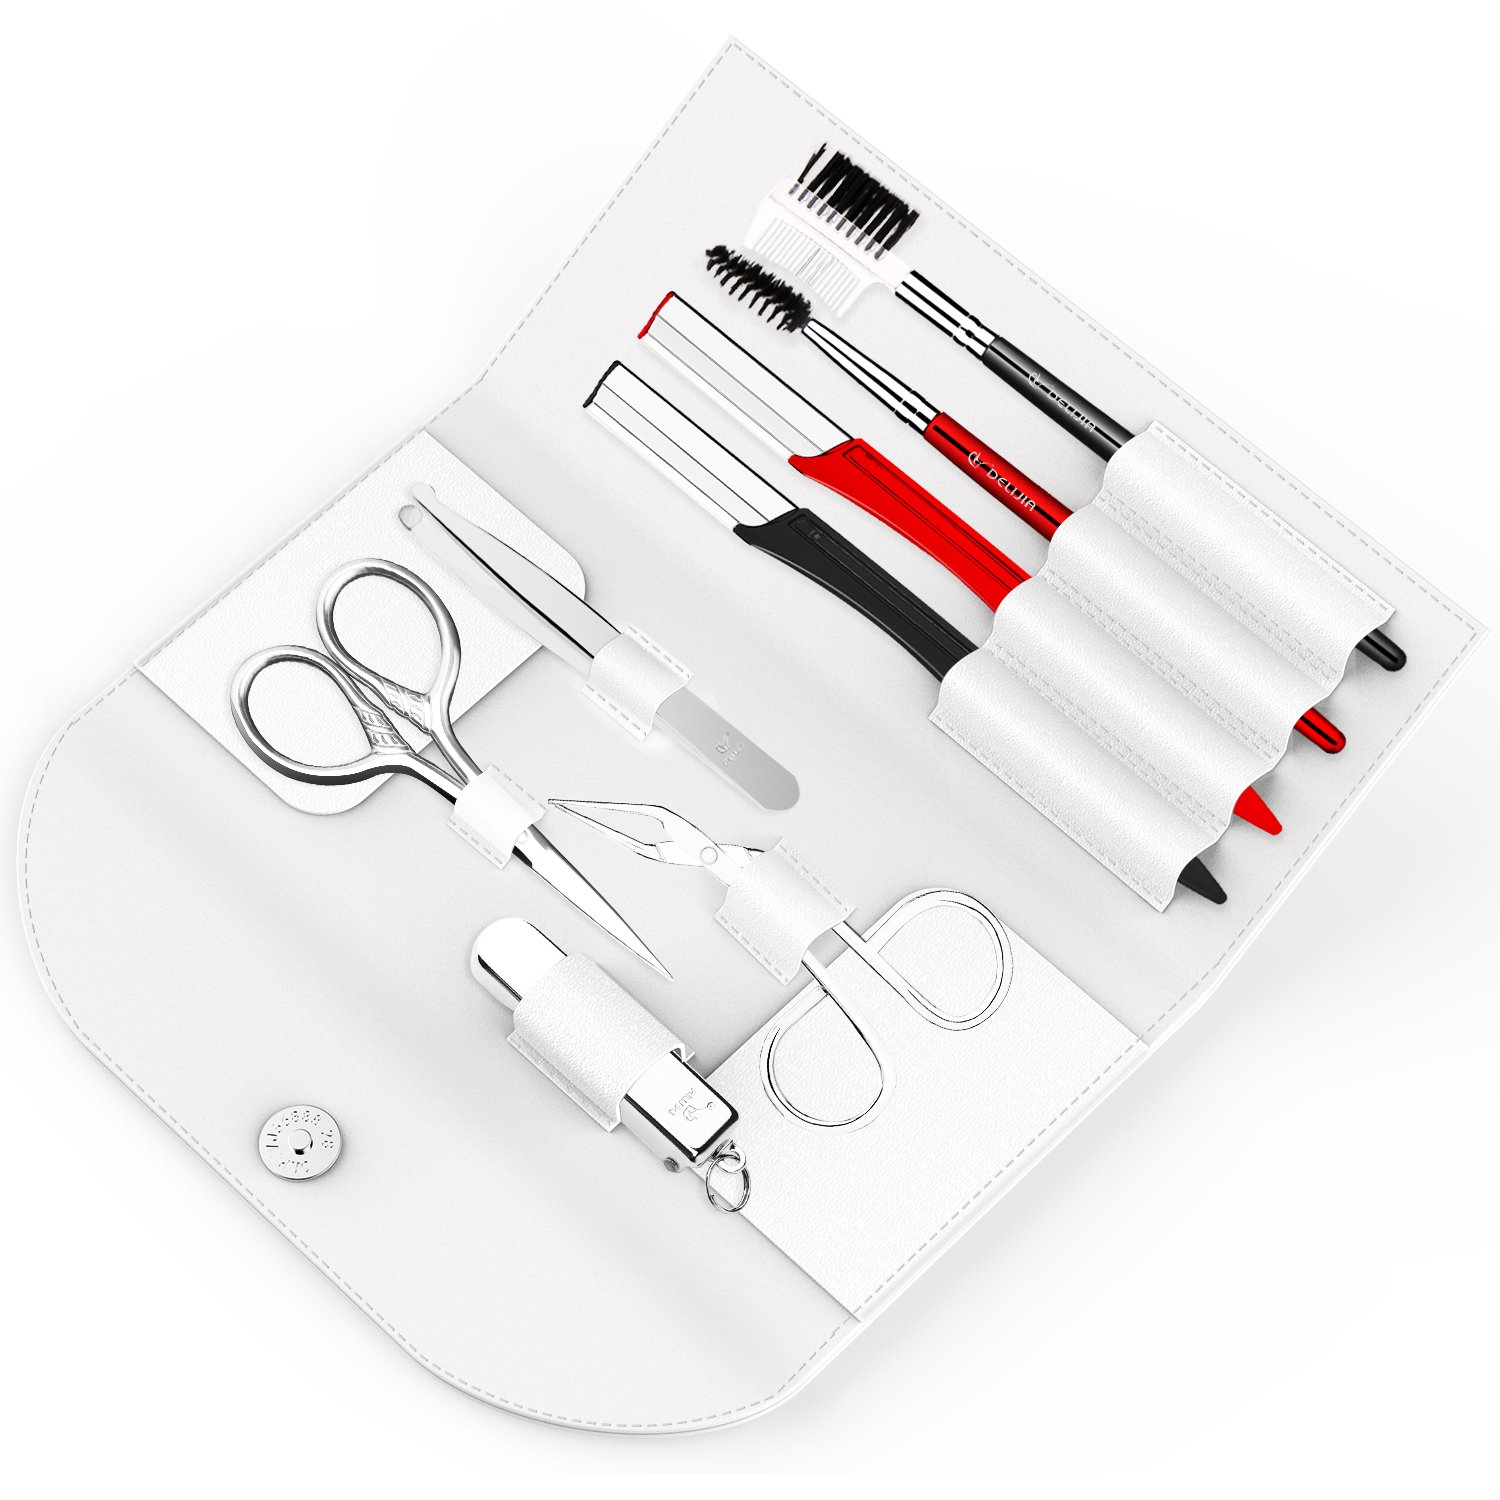 Eyebrow Trimmer Grooming Kit - DELIJIA Eyebrow Trimming Set For Women and Men, Including, Tweezers, Razor, Brush, Scissors, Combs and Nail Clipper, Professional Eyebrow Trimming Kit (black) DELIJIA USA DERECT